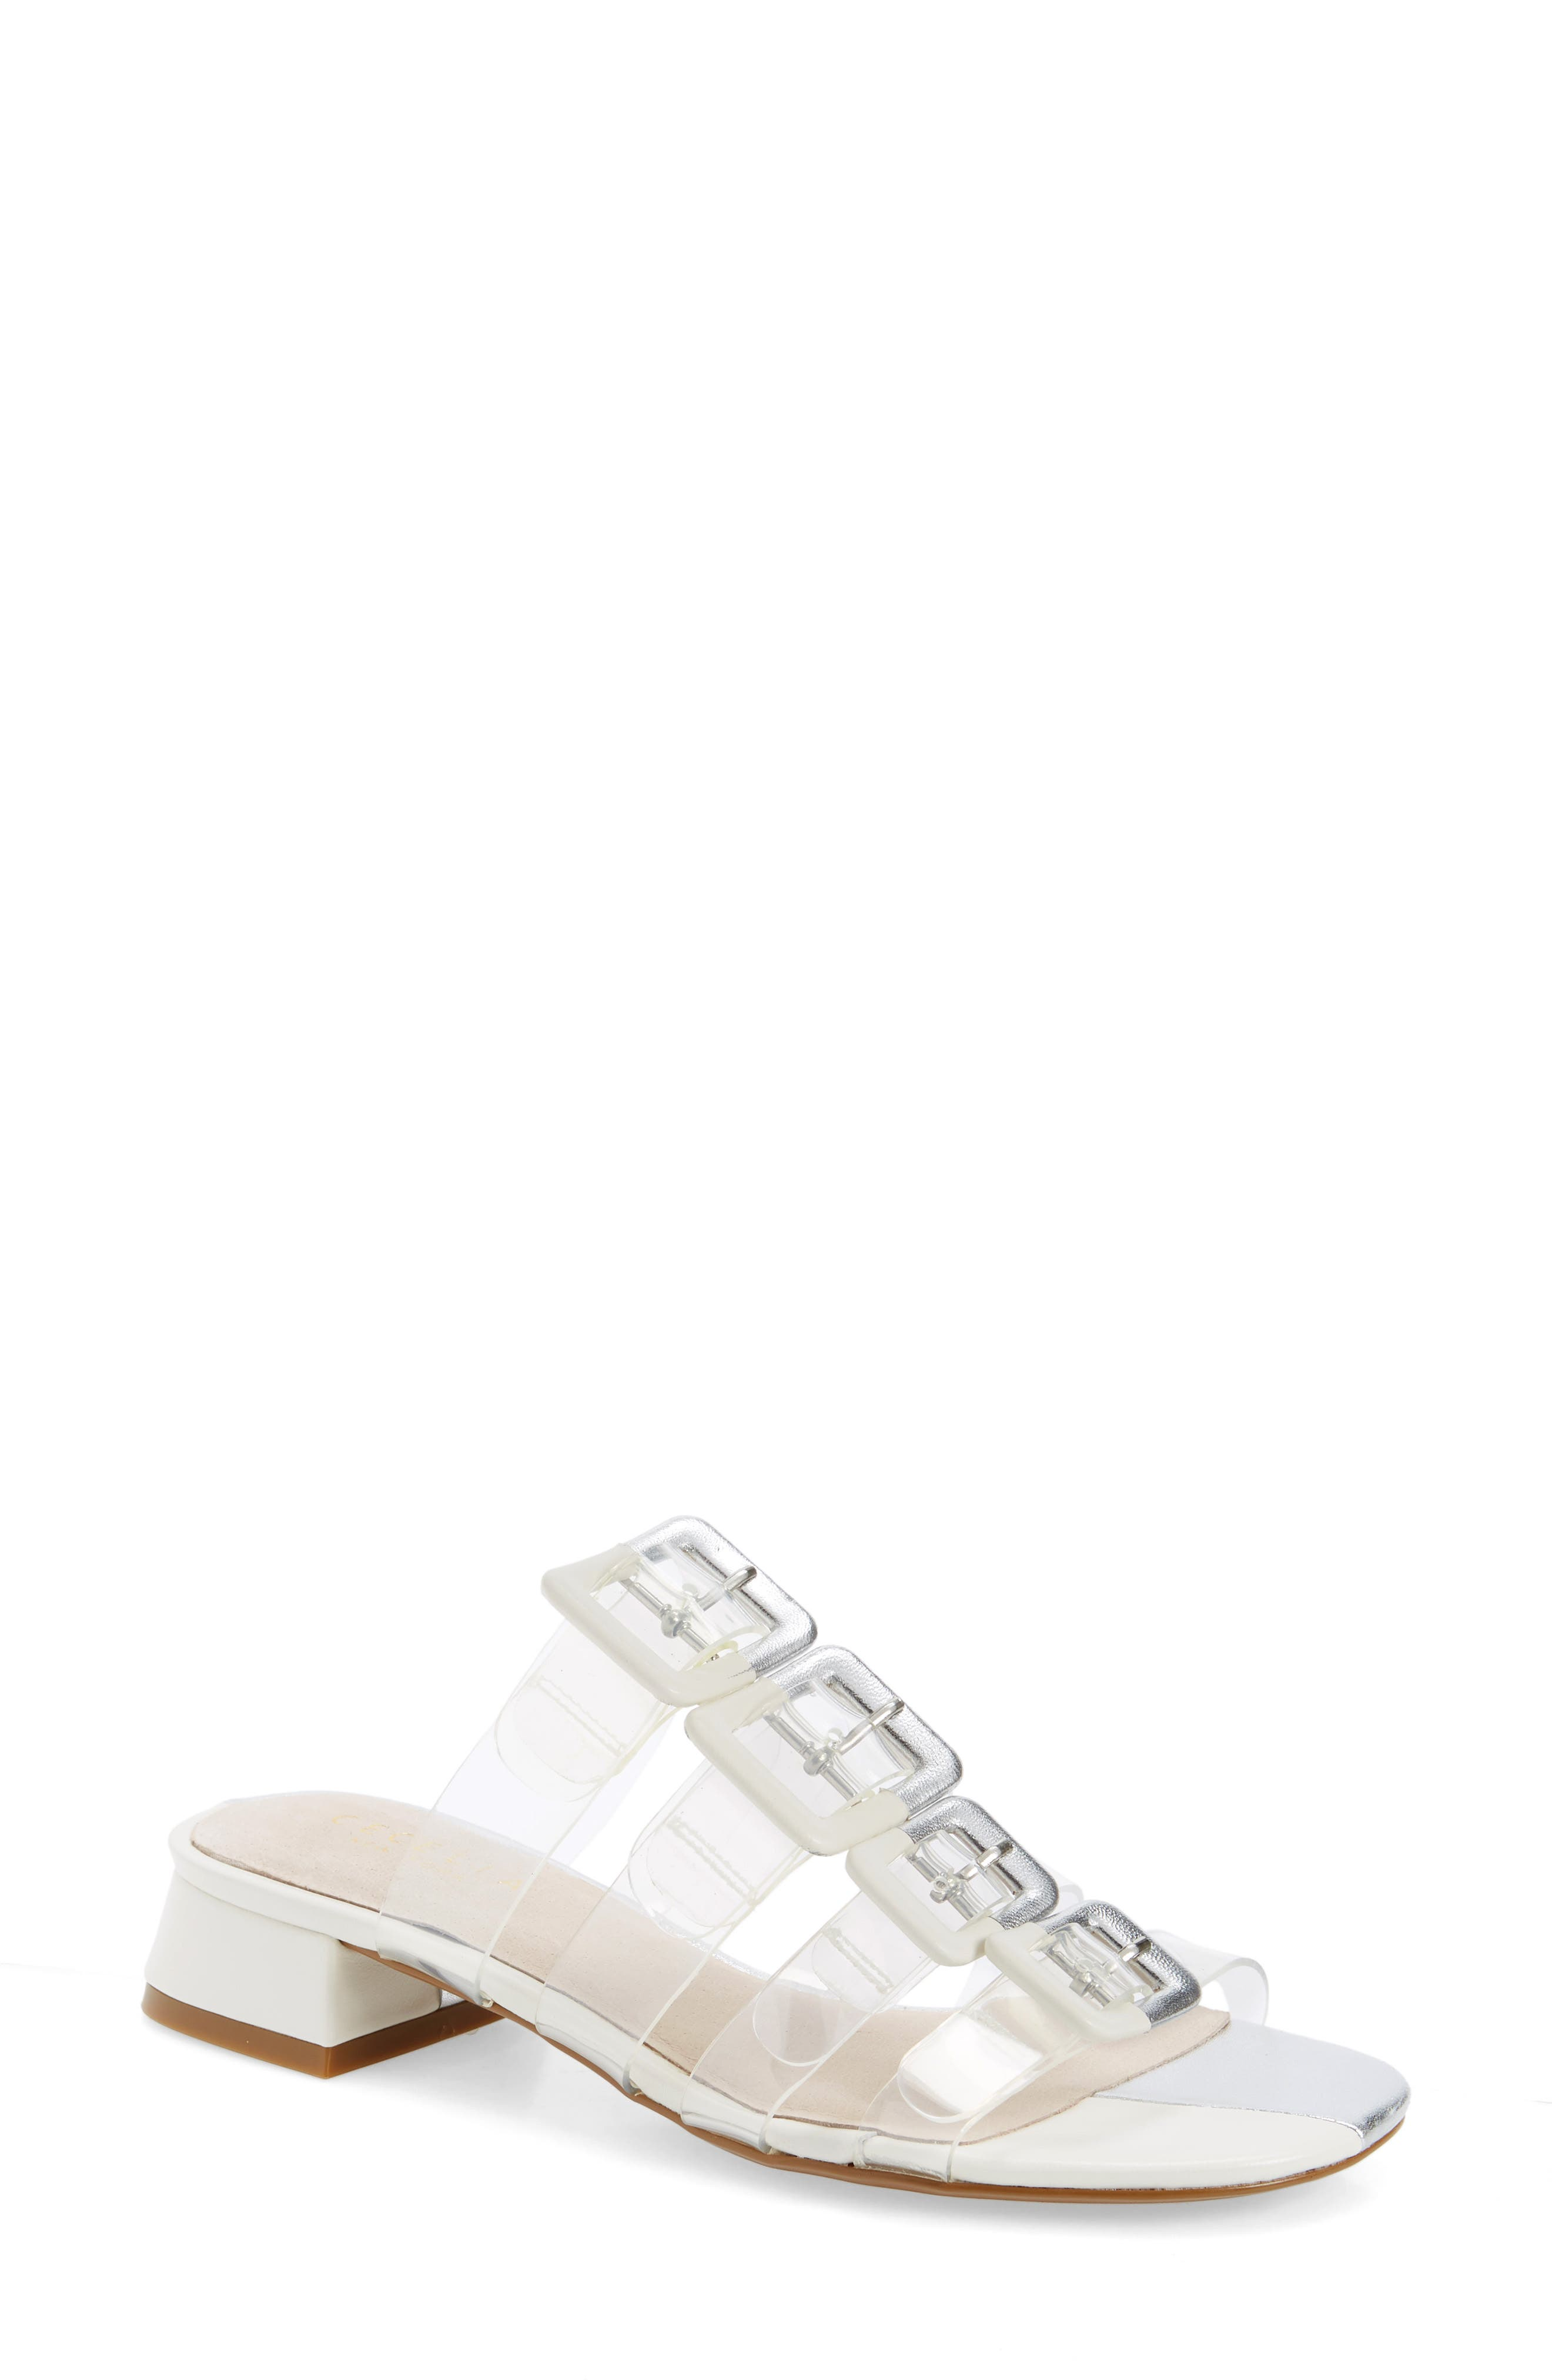 Lincoln Strappy Clear Slide Sandal